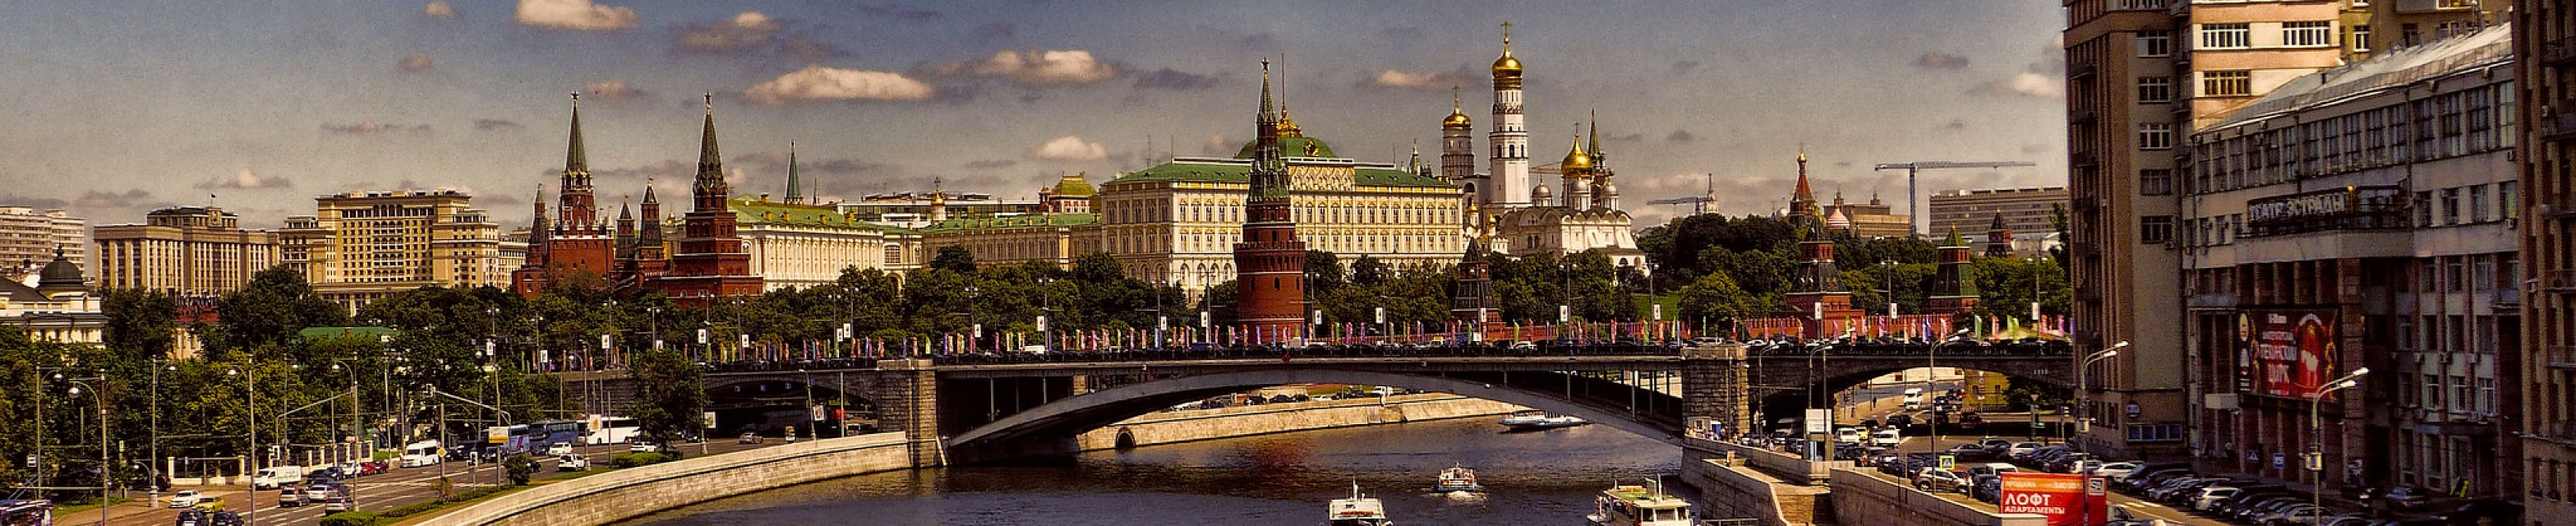 Moscu - Moscow